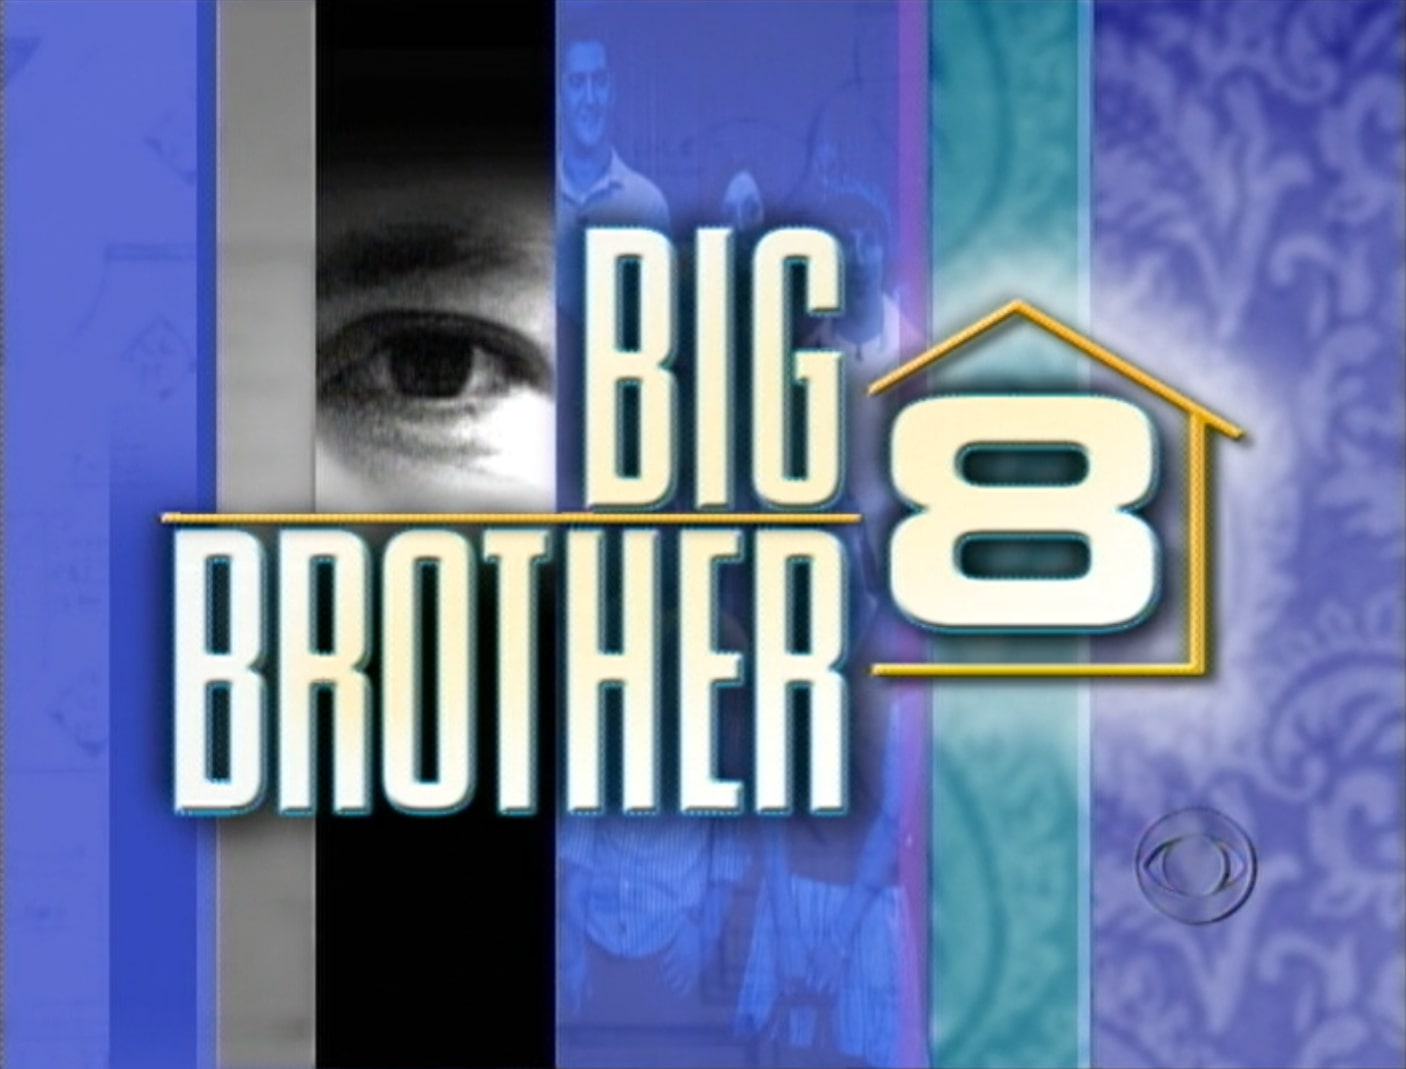 Big Brother 8 (US)